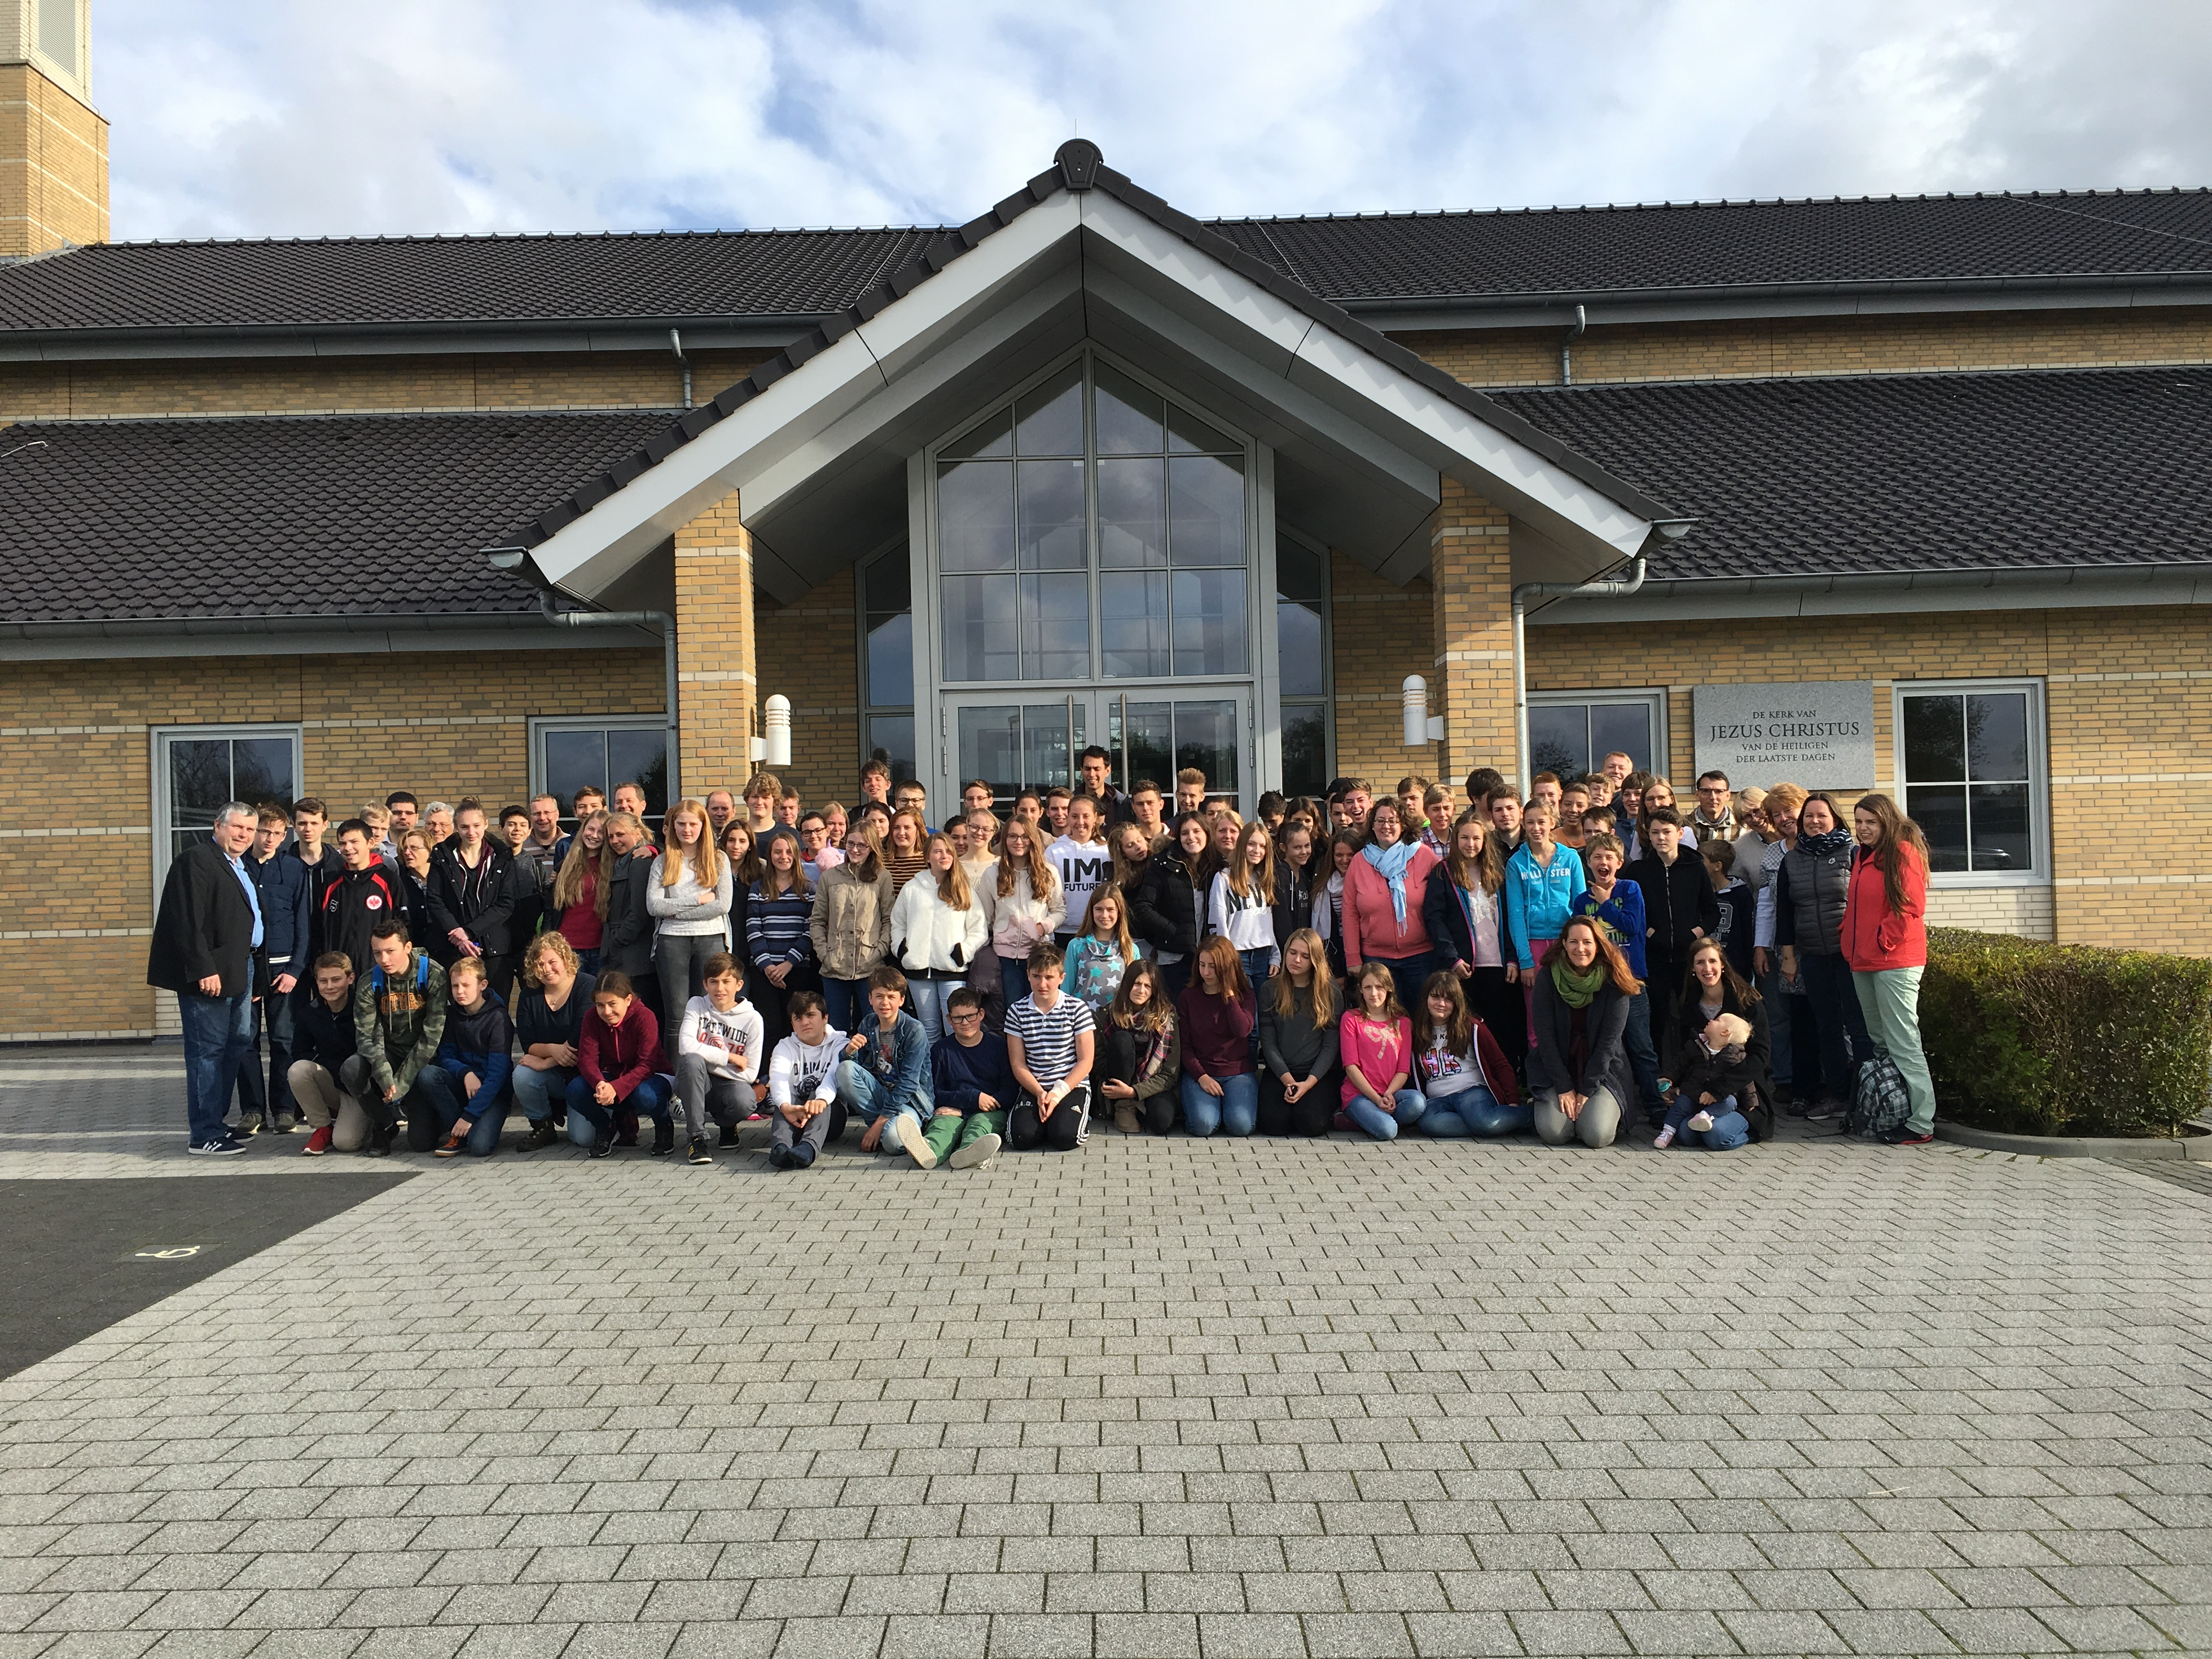 During their October 2017 temple trip to The Hague Netherlands Temple, youth from the Friedrichsdorf Germany Stake pause for group photo outside a chapel near the temple.